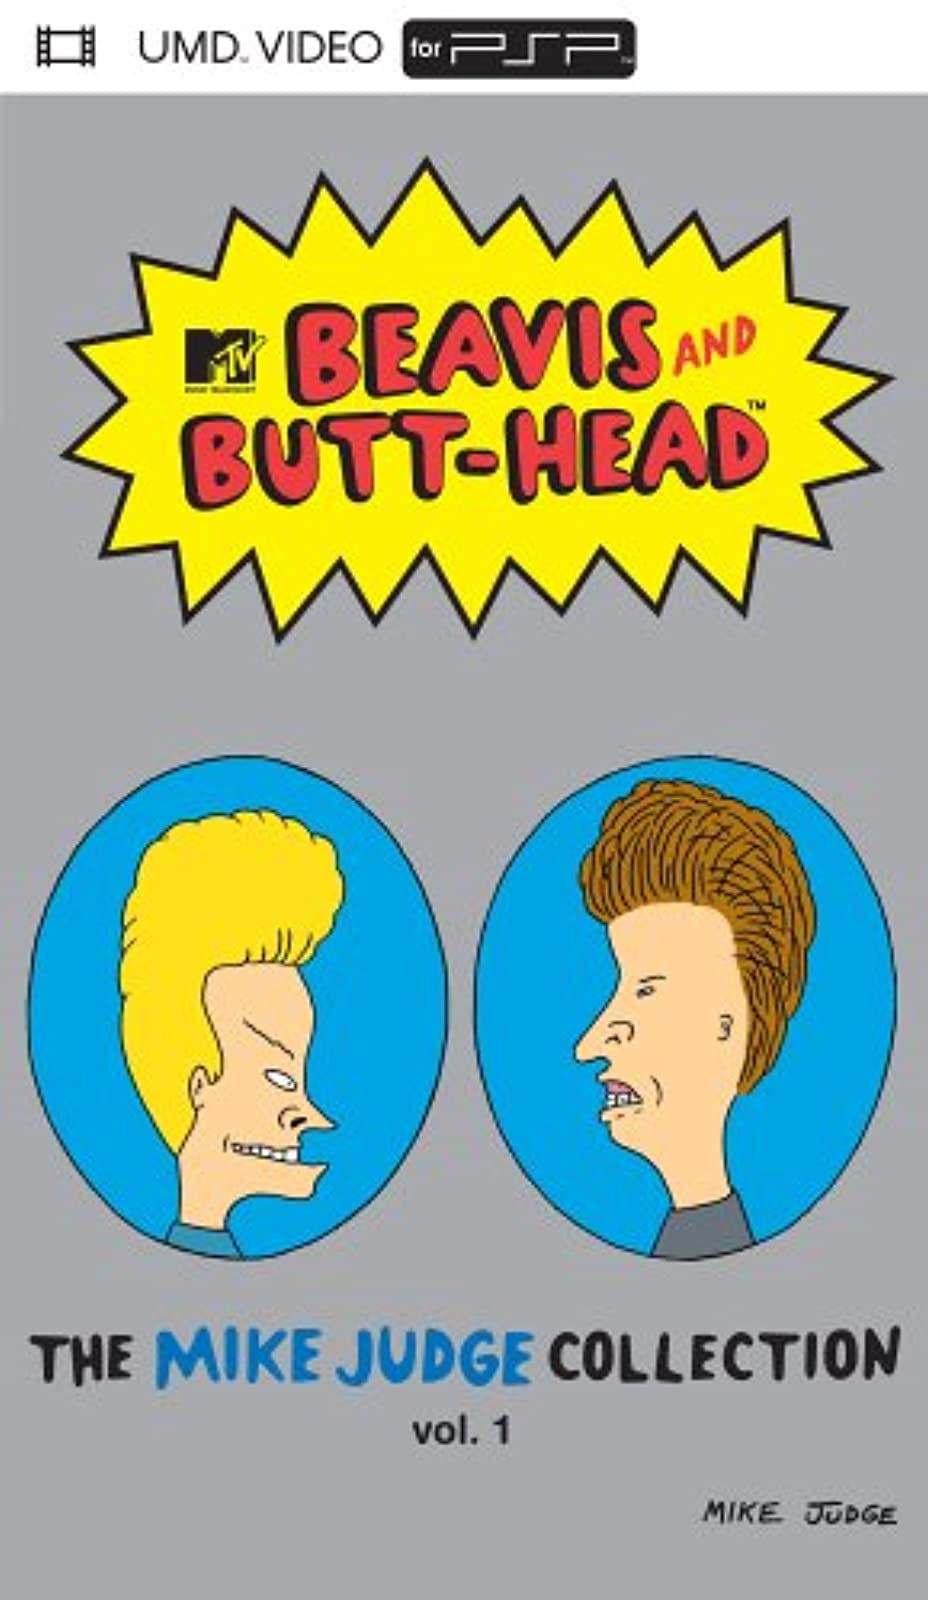 Beavis And Butt-Head The Mike Judge Collection Vol 1 UMD For PSP